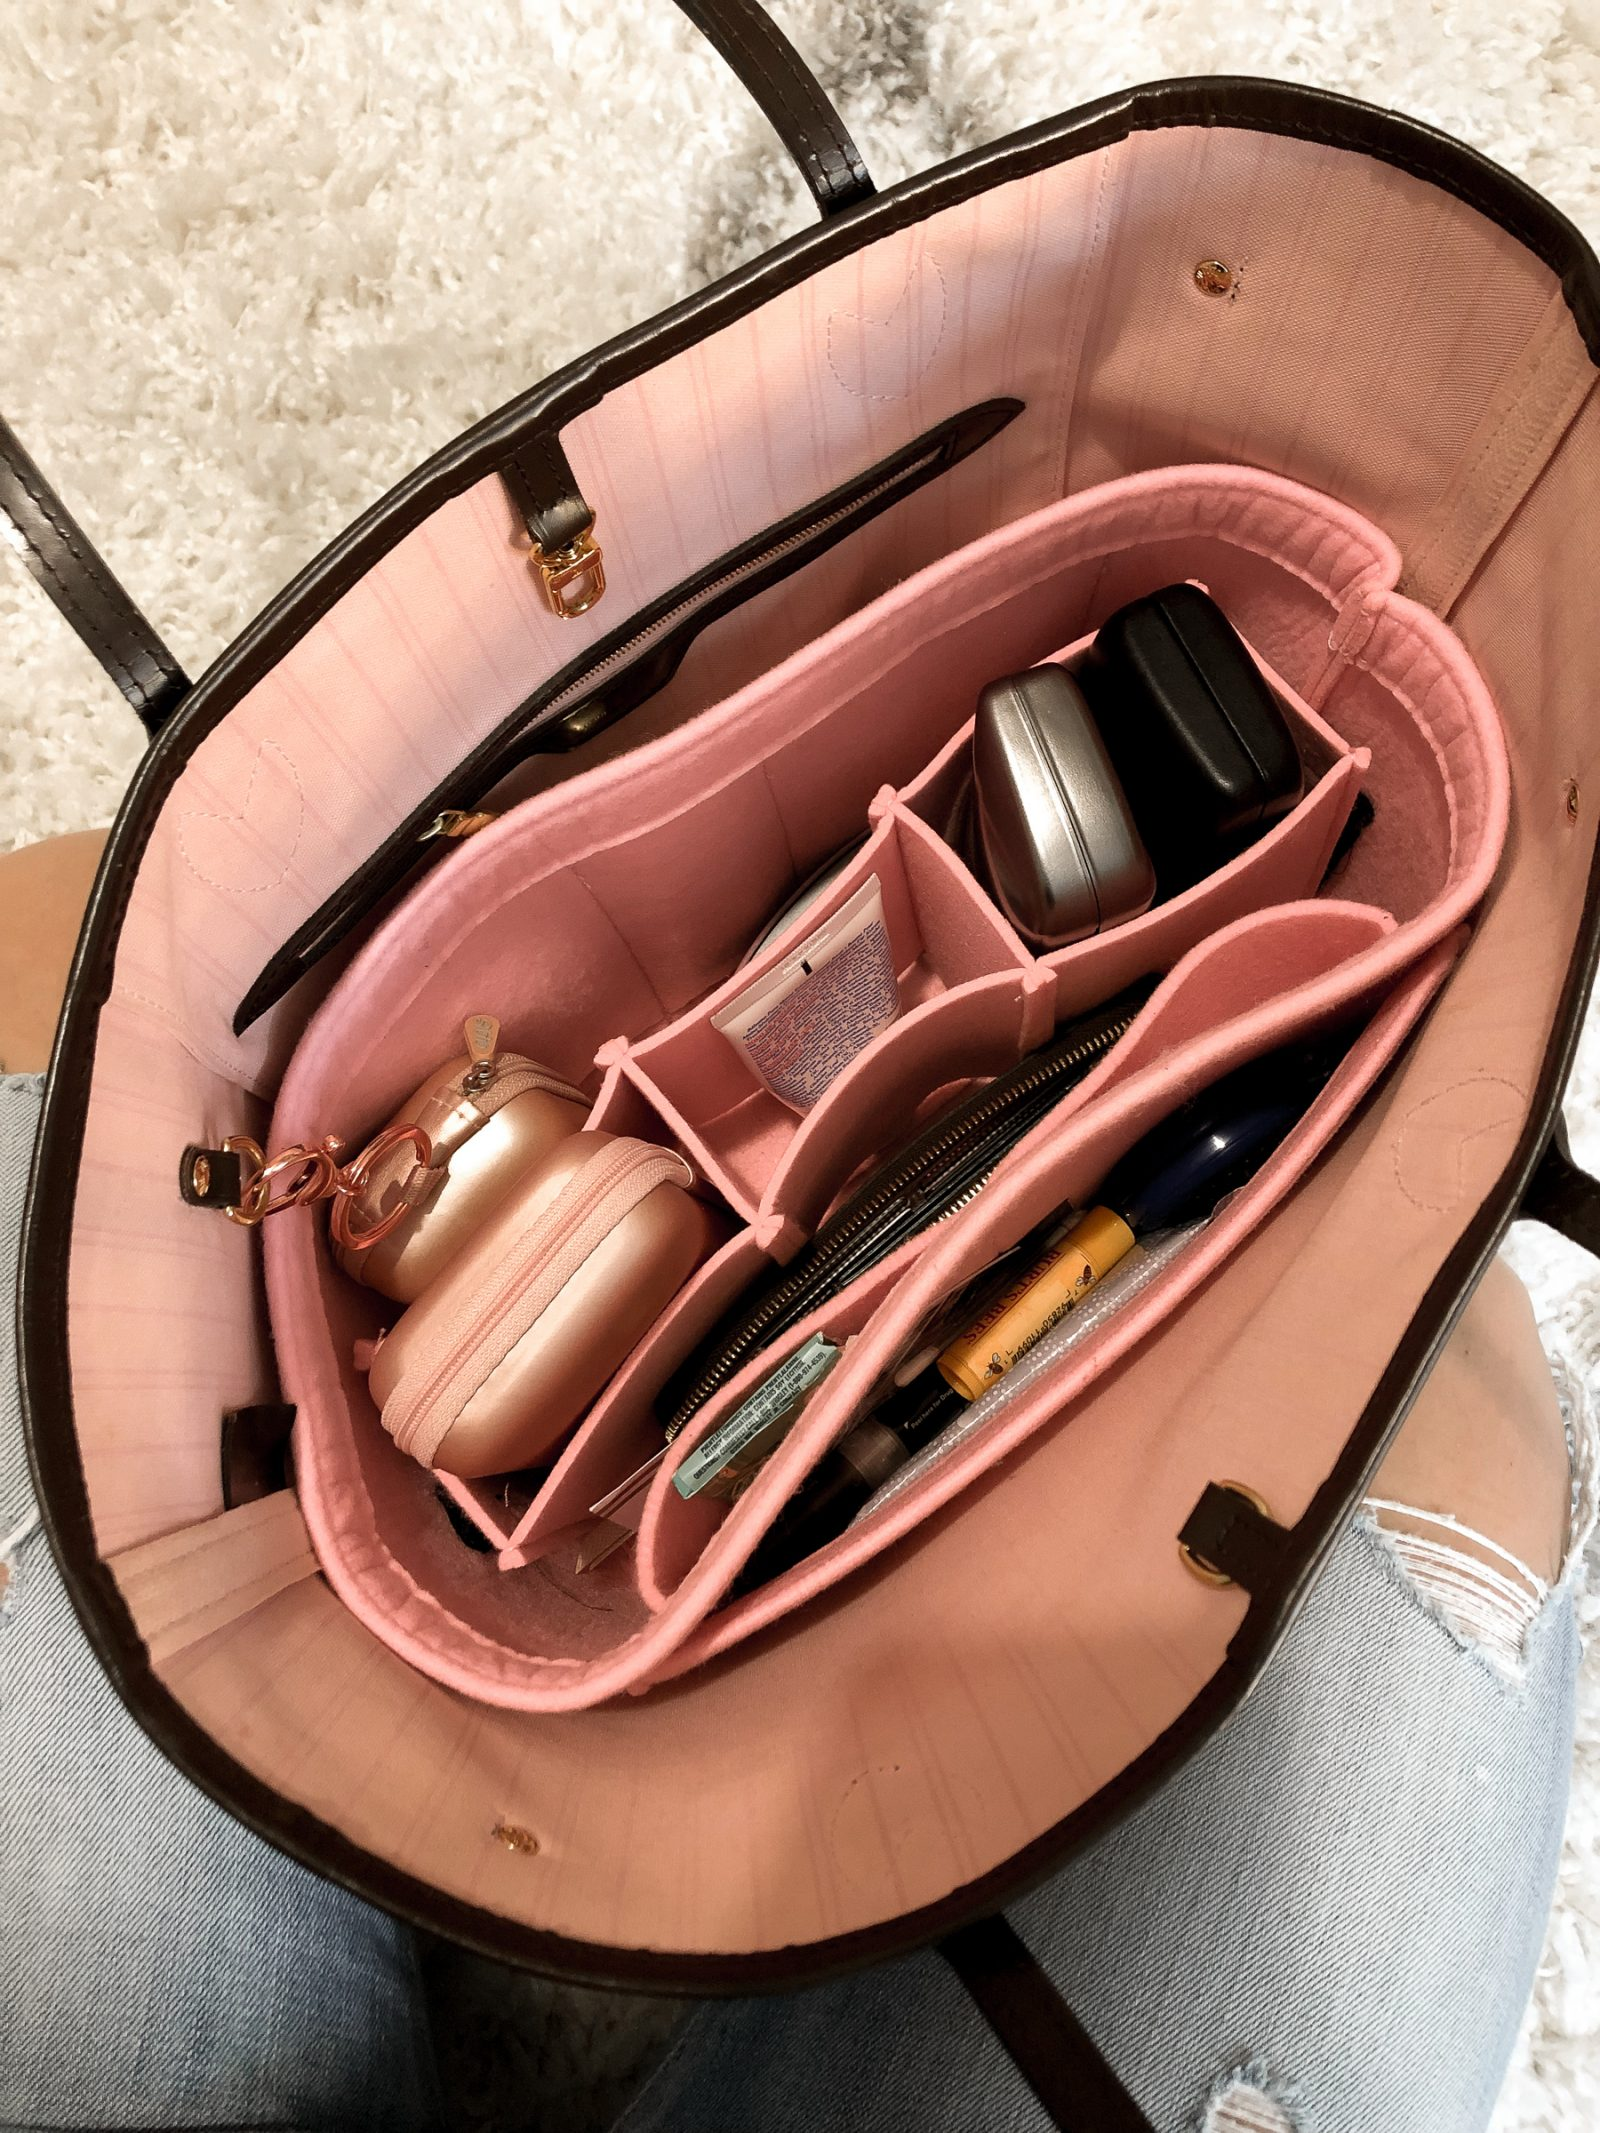 Houston blogger Uptown with Elly Brown shares her Neverfull MM felt bag organizer